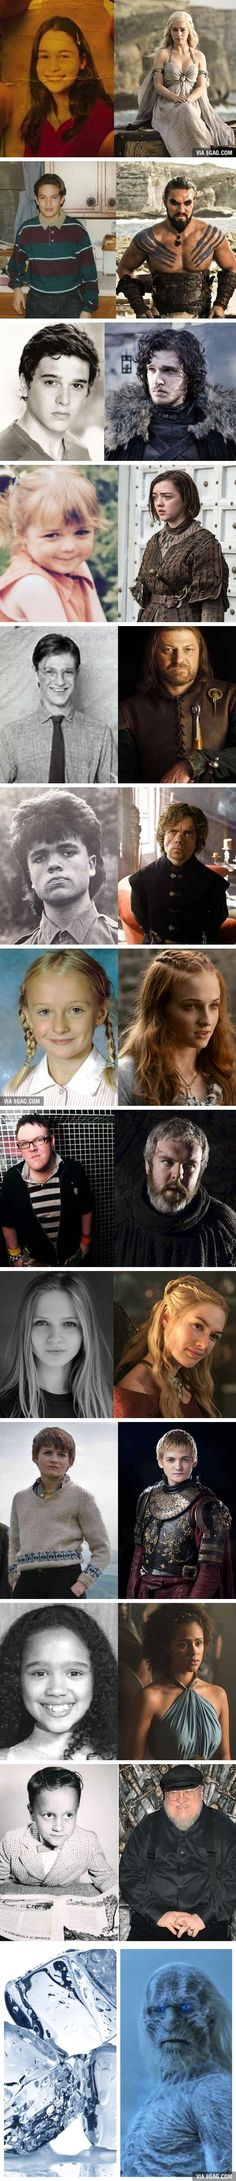 Game Of Thrones - then and now